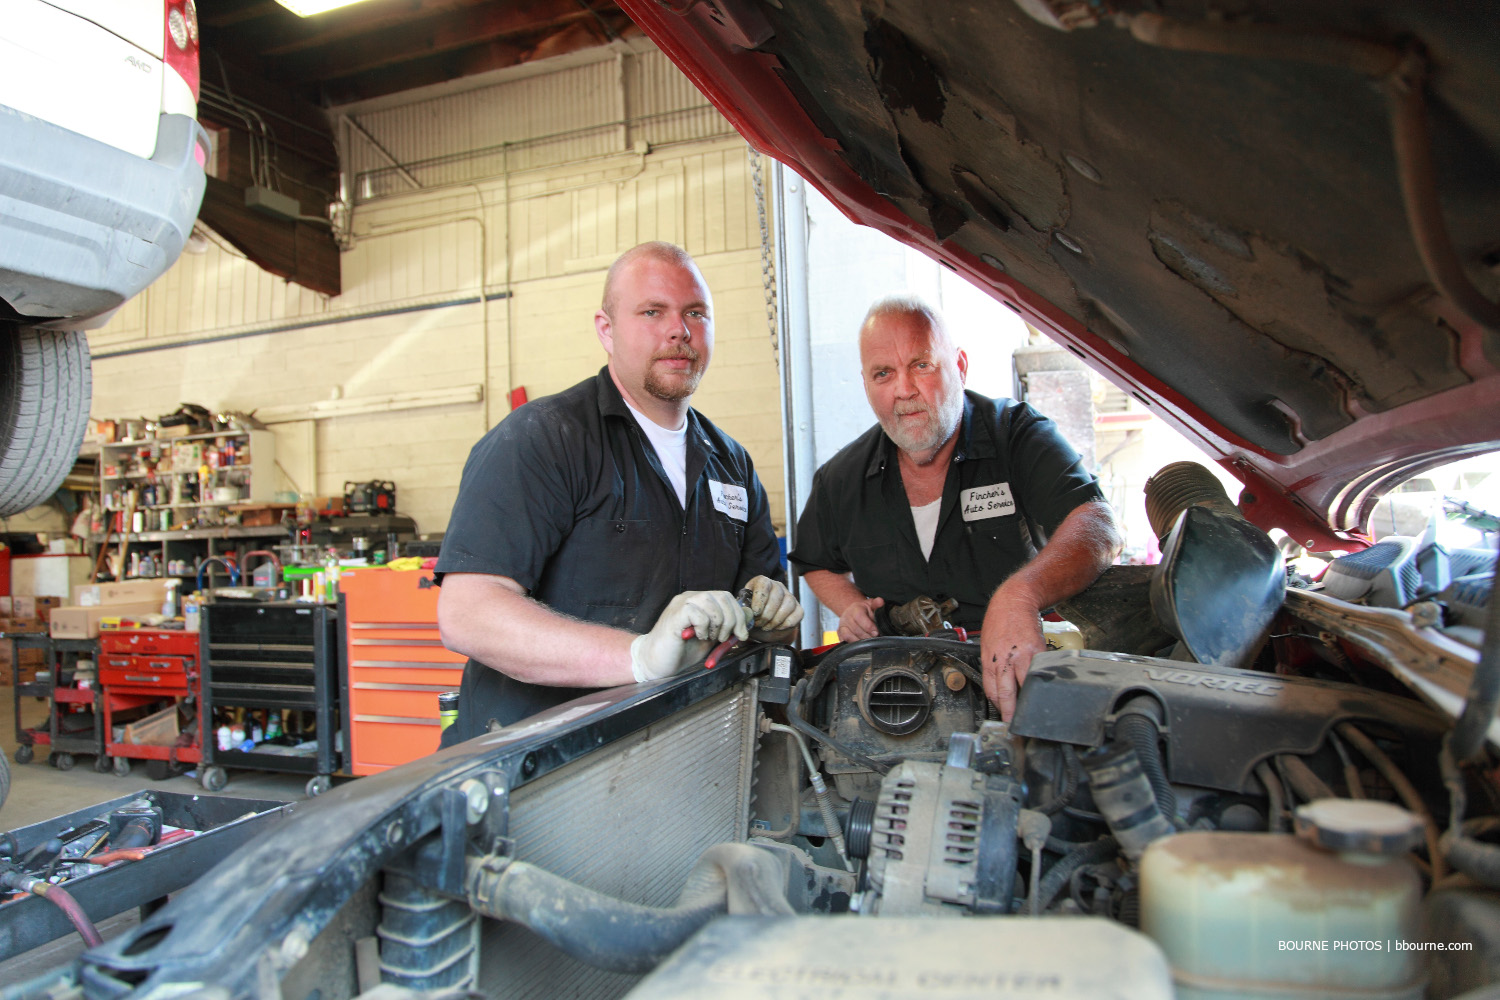 two men posing for picture while working on engine of a car in auto shop.